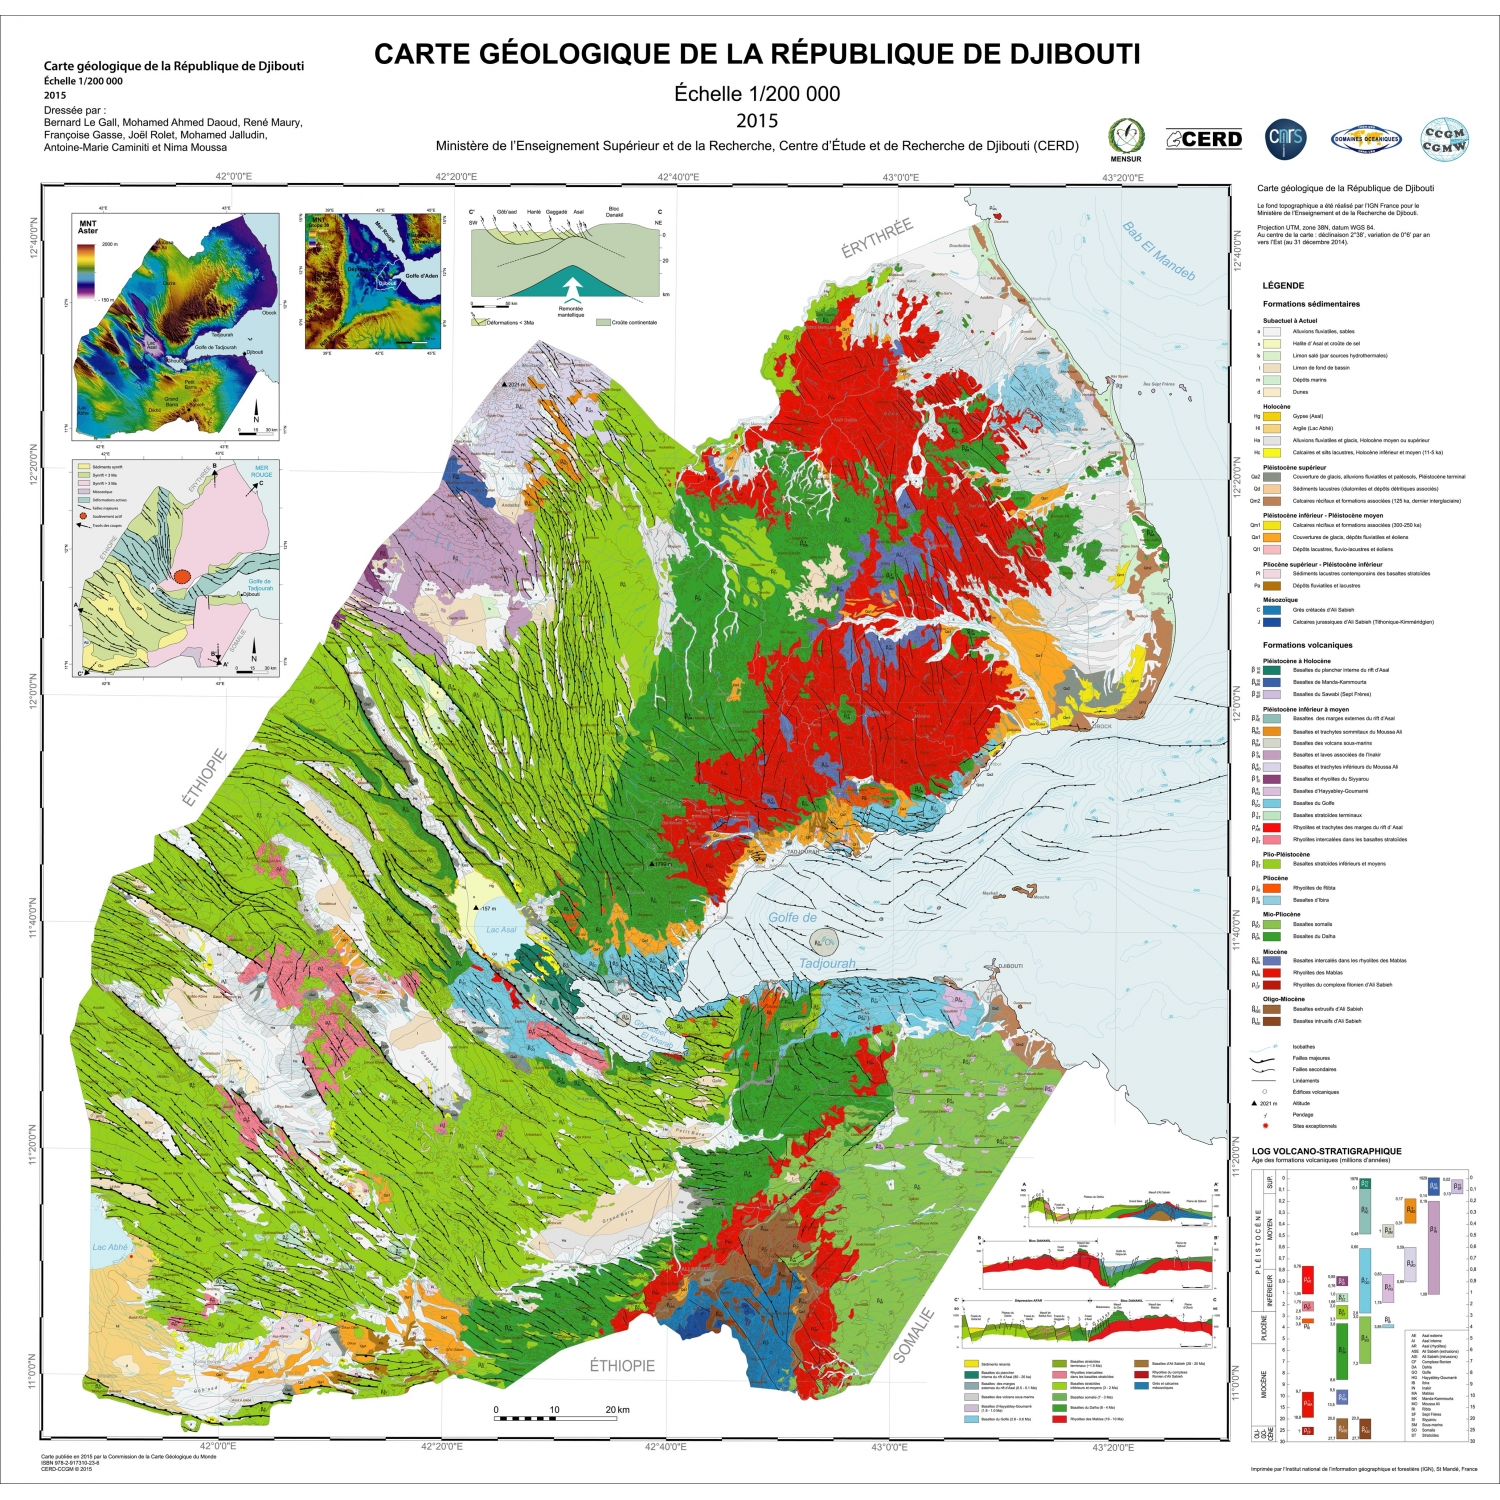 Geological Map Of The Republic Of Djibouti CCGM CGMW - Republic of djibouti map